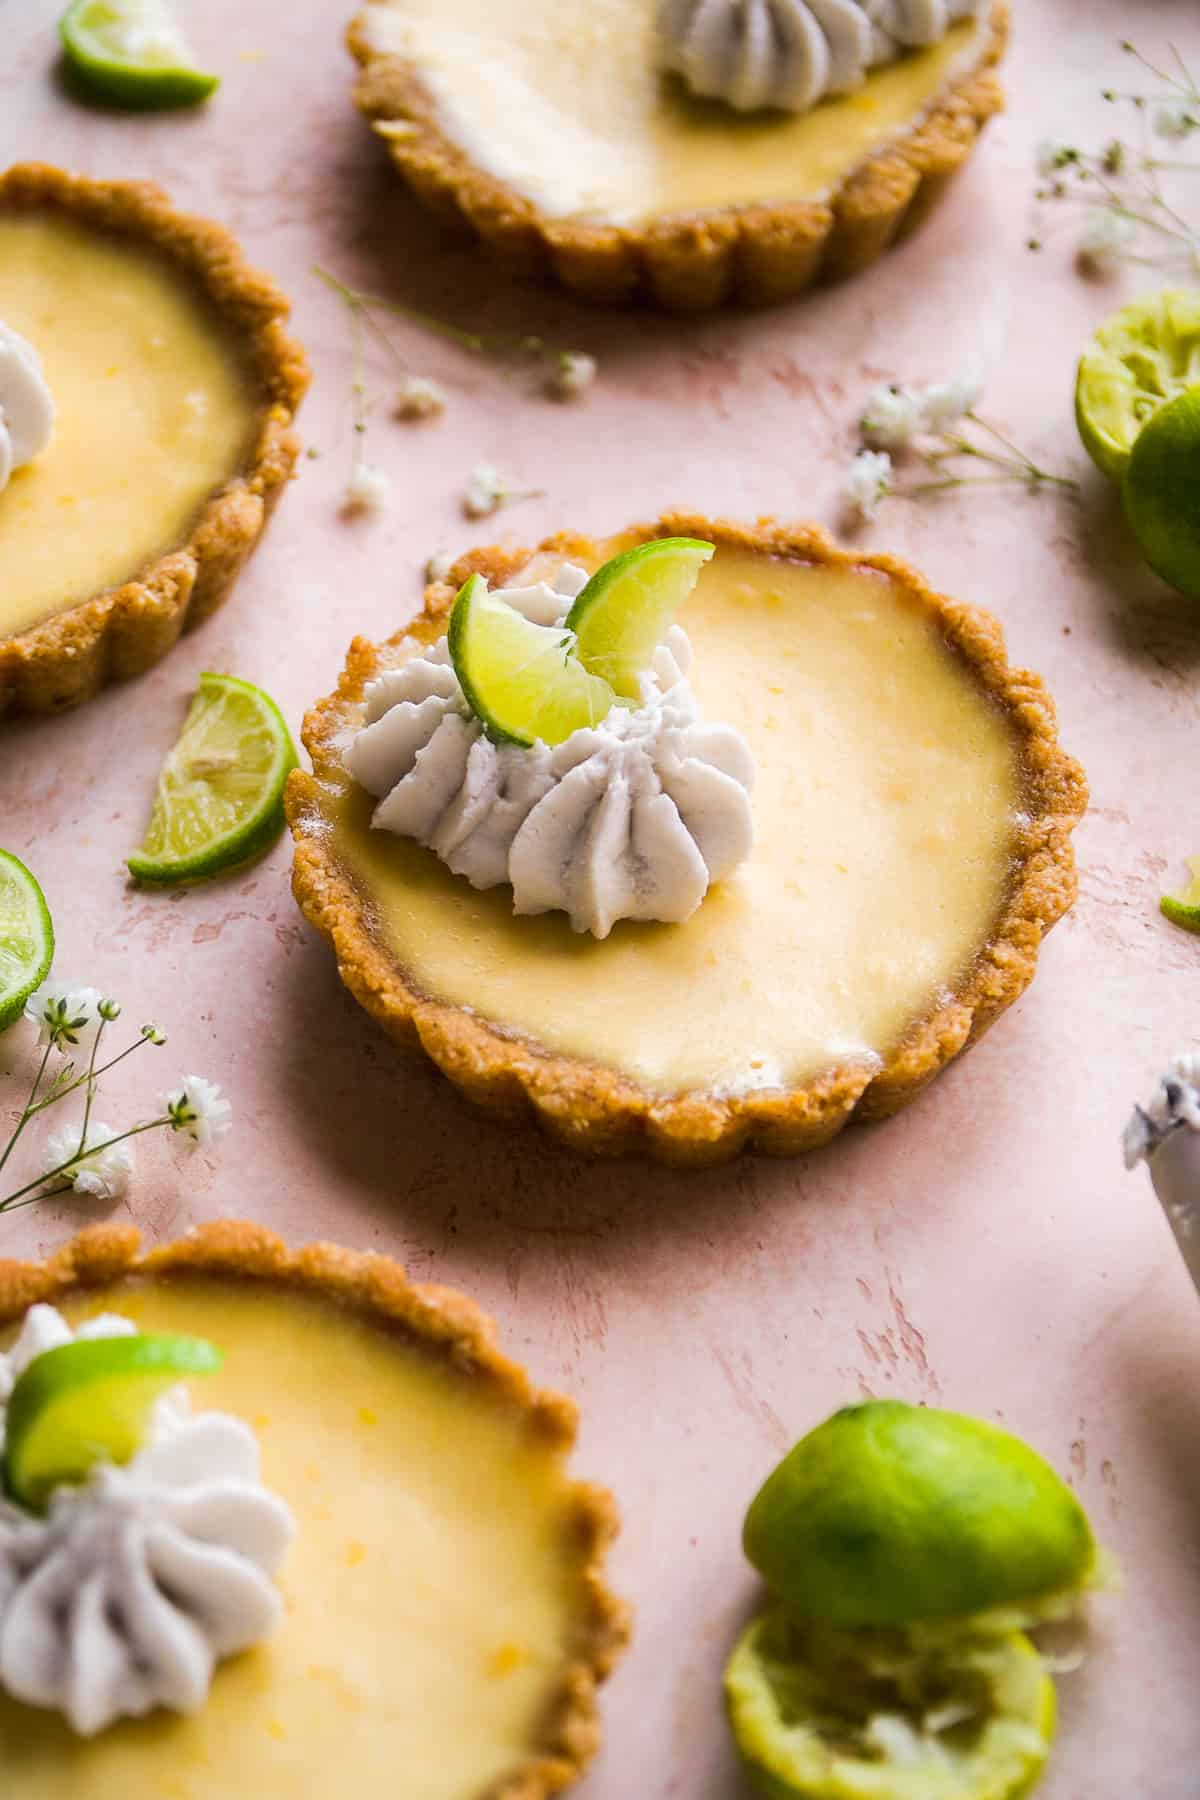 Gluten free key lime pie tarts with whipped cream.